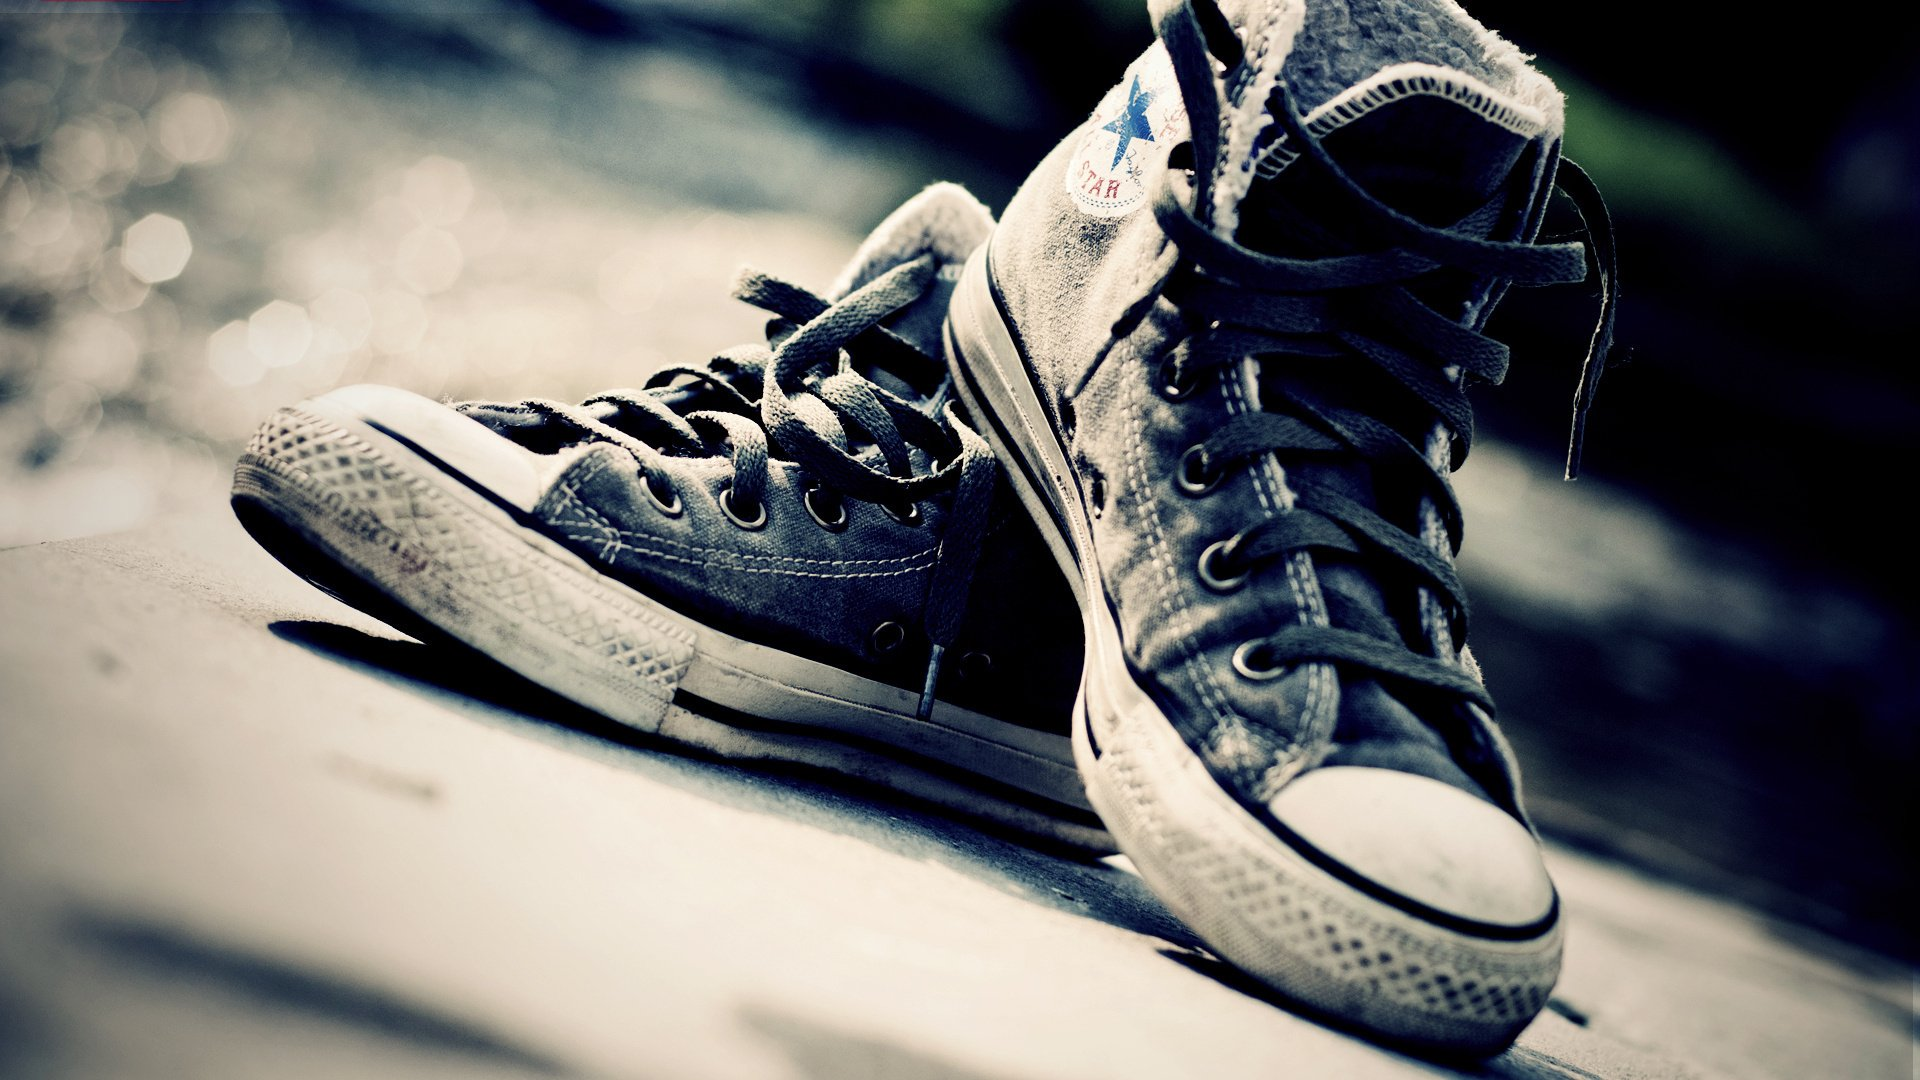 d7c2d85c8a15 41 Converse HD Wallpapers